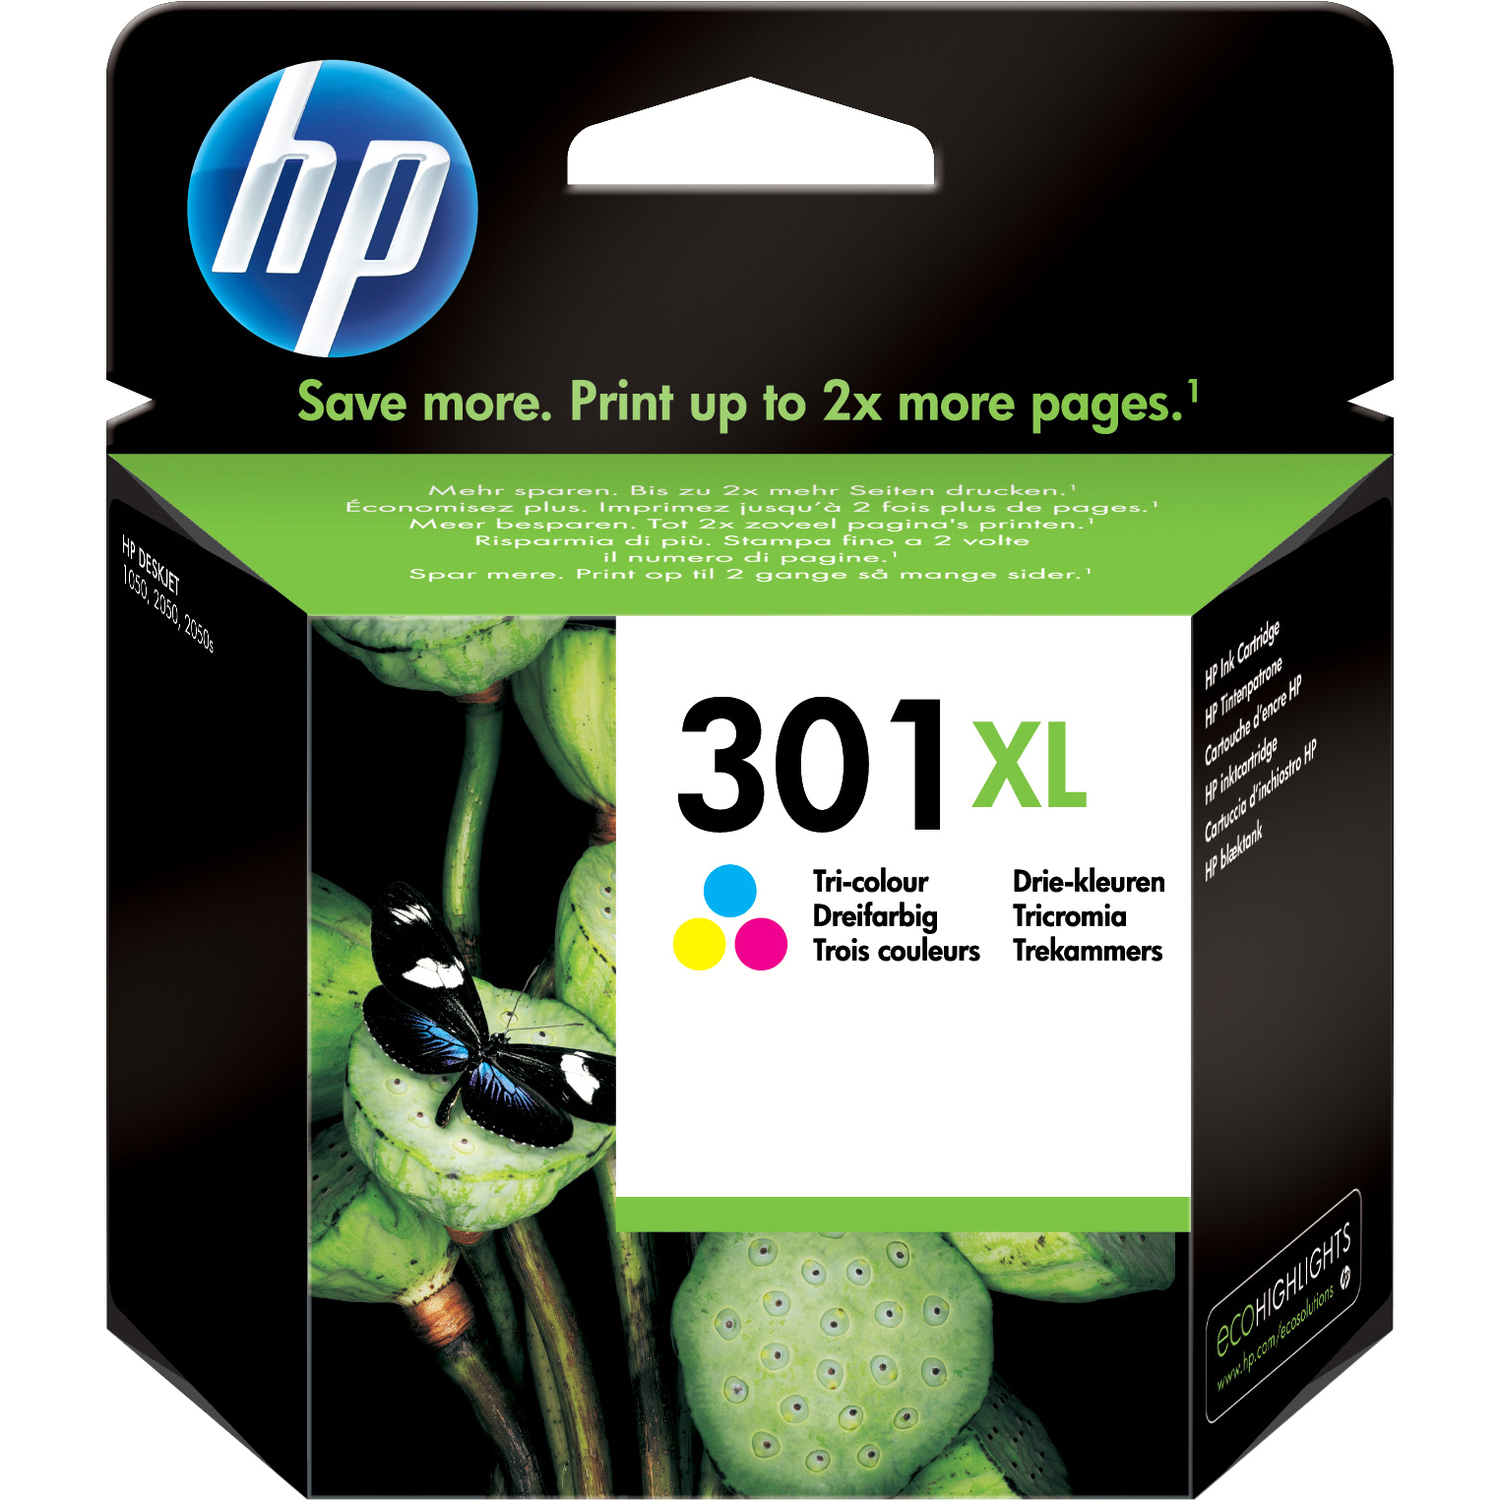 HP 301XL Ink Cartridge - Cyan, Magenta, Yellow